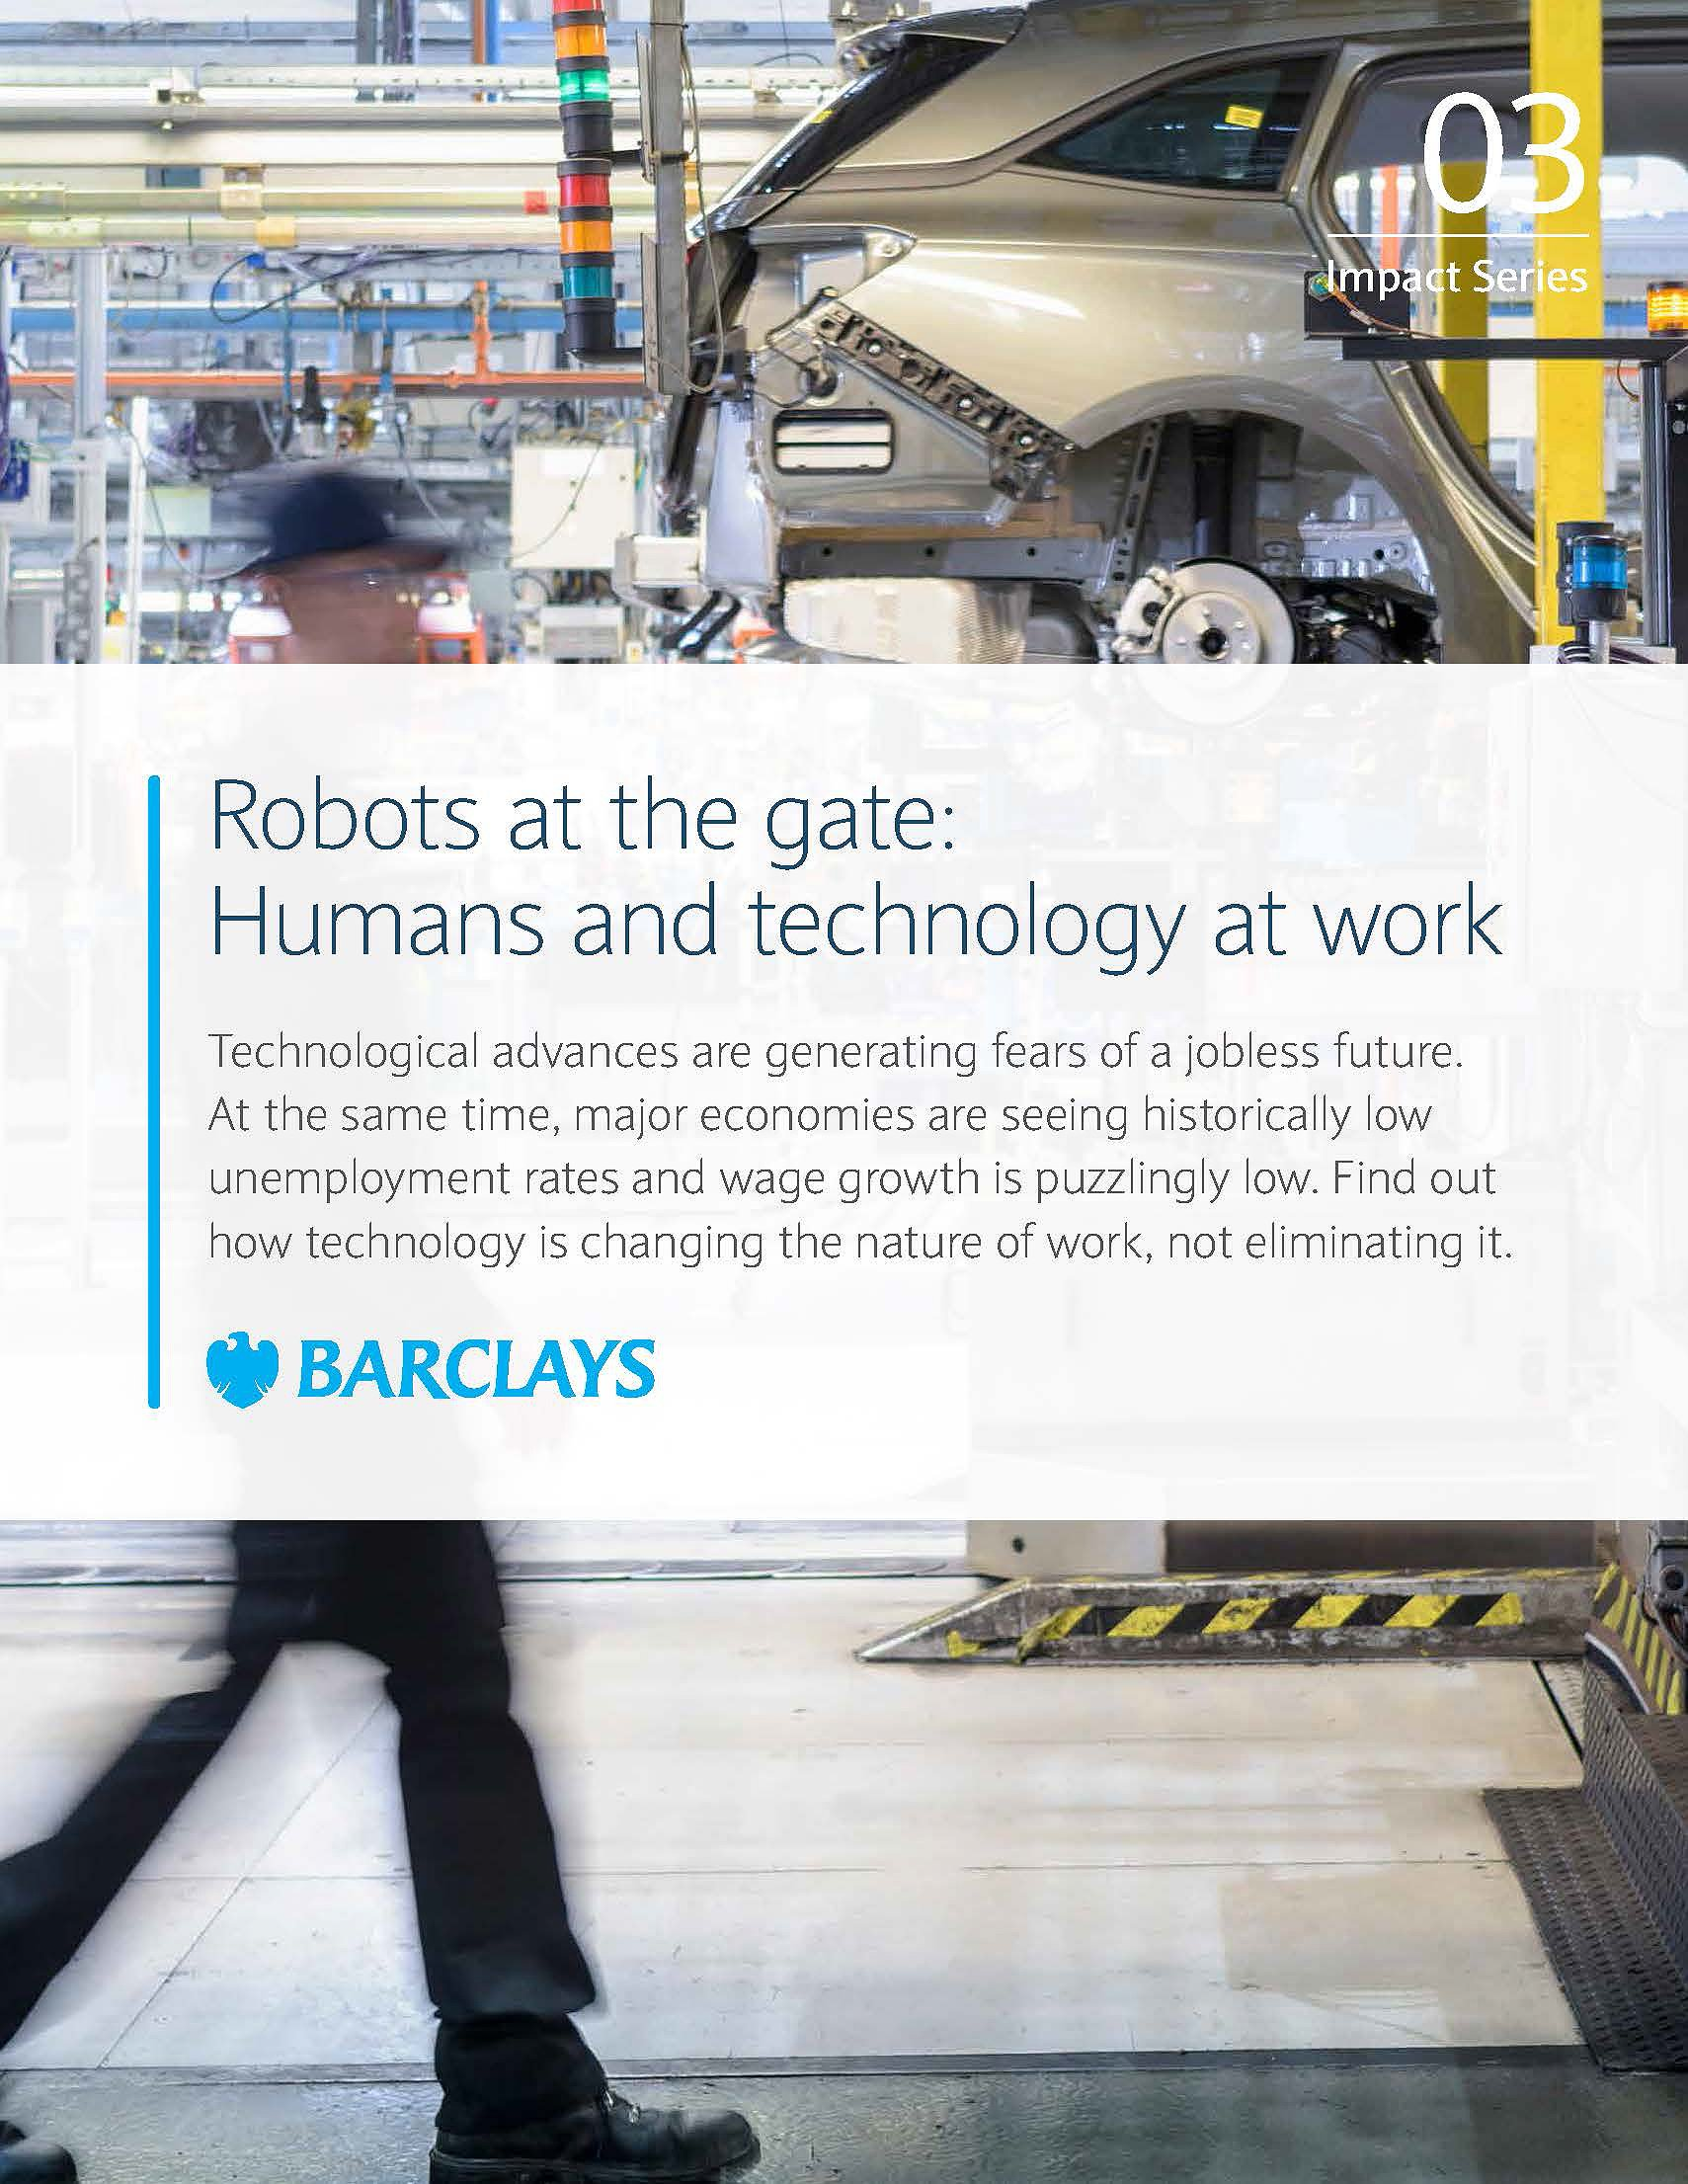 Robots at the Gate: Humans and Technology at Work